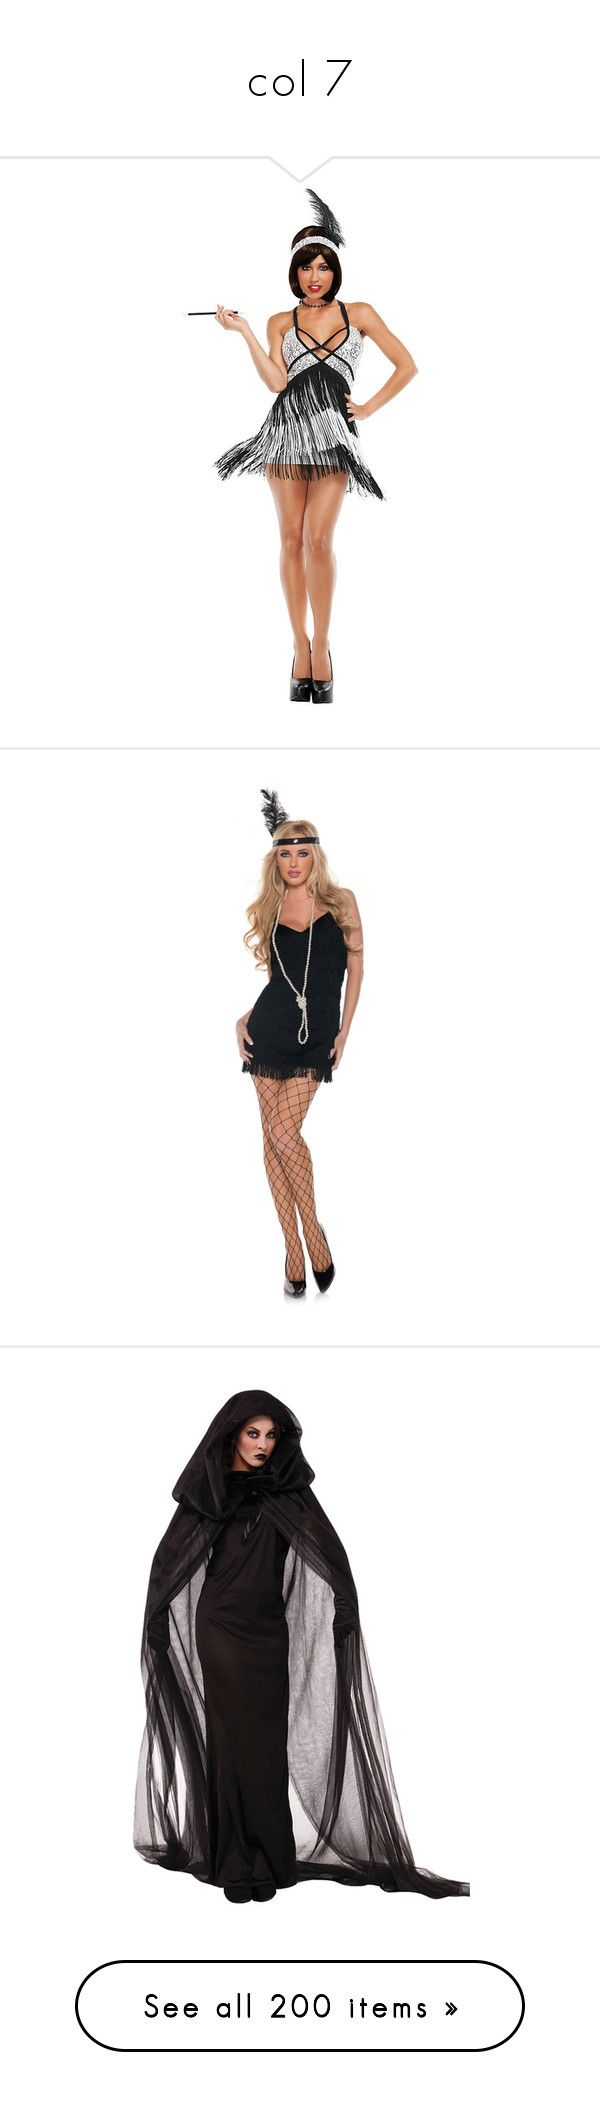 """""""col 7"""" by hogwartsdragoness ❤ liked on Polyvore featuring women's fashion, costumes, halloween costumes, multicolor, 1920s flapper costume, 1920s costume, sexy adult costumes, 20s flapper costume, sexy flapper costume y gatsby costumes"""